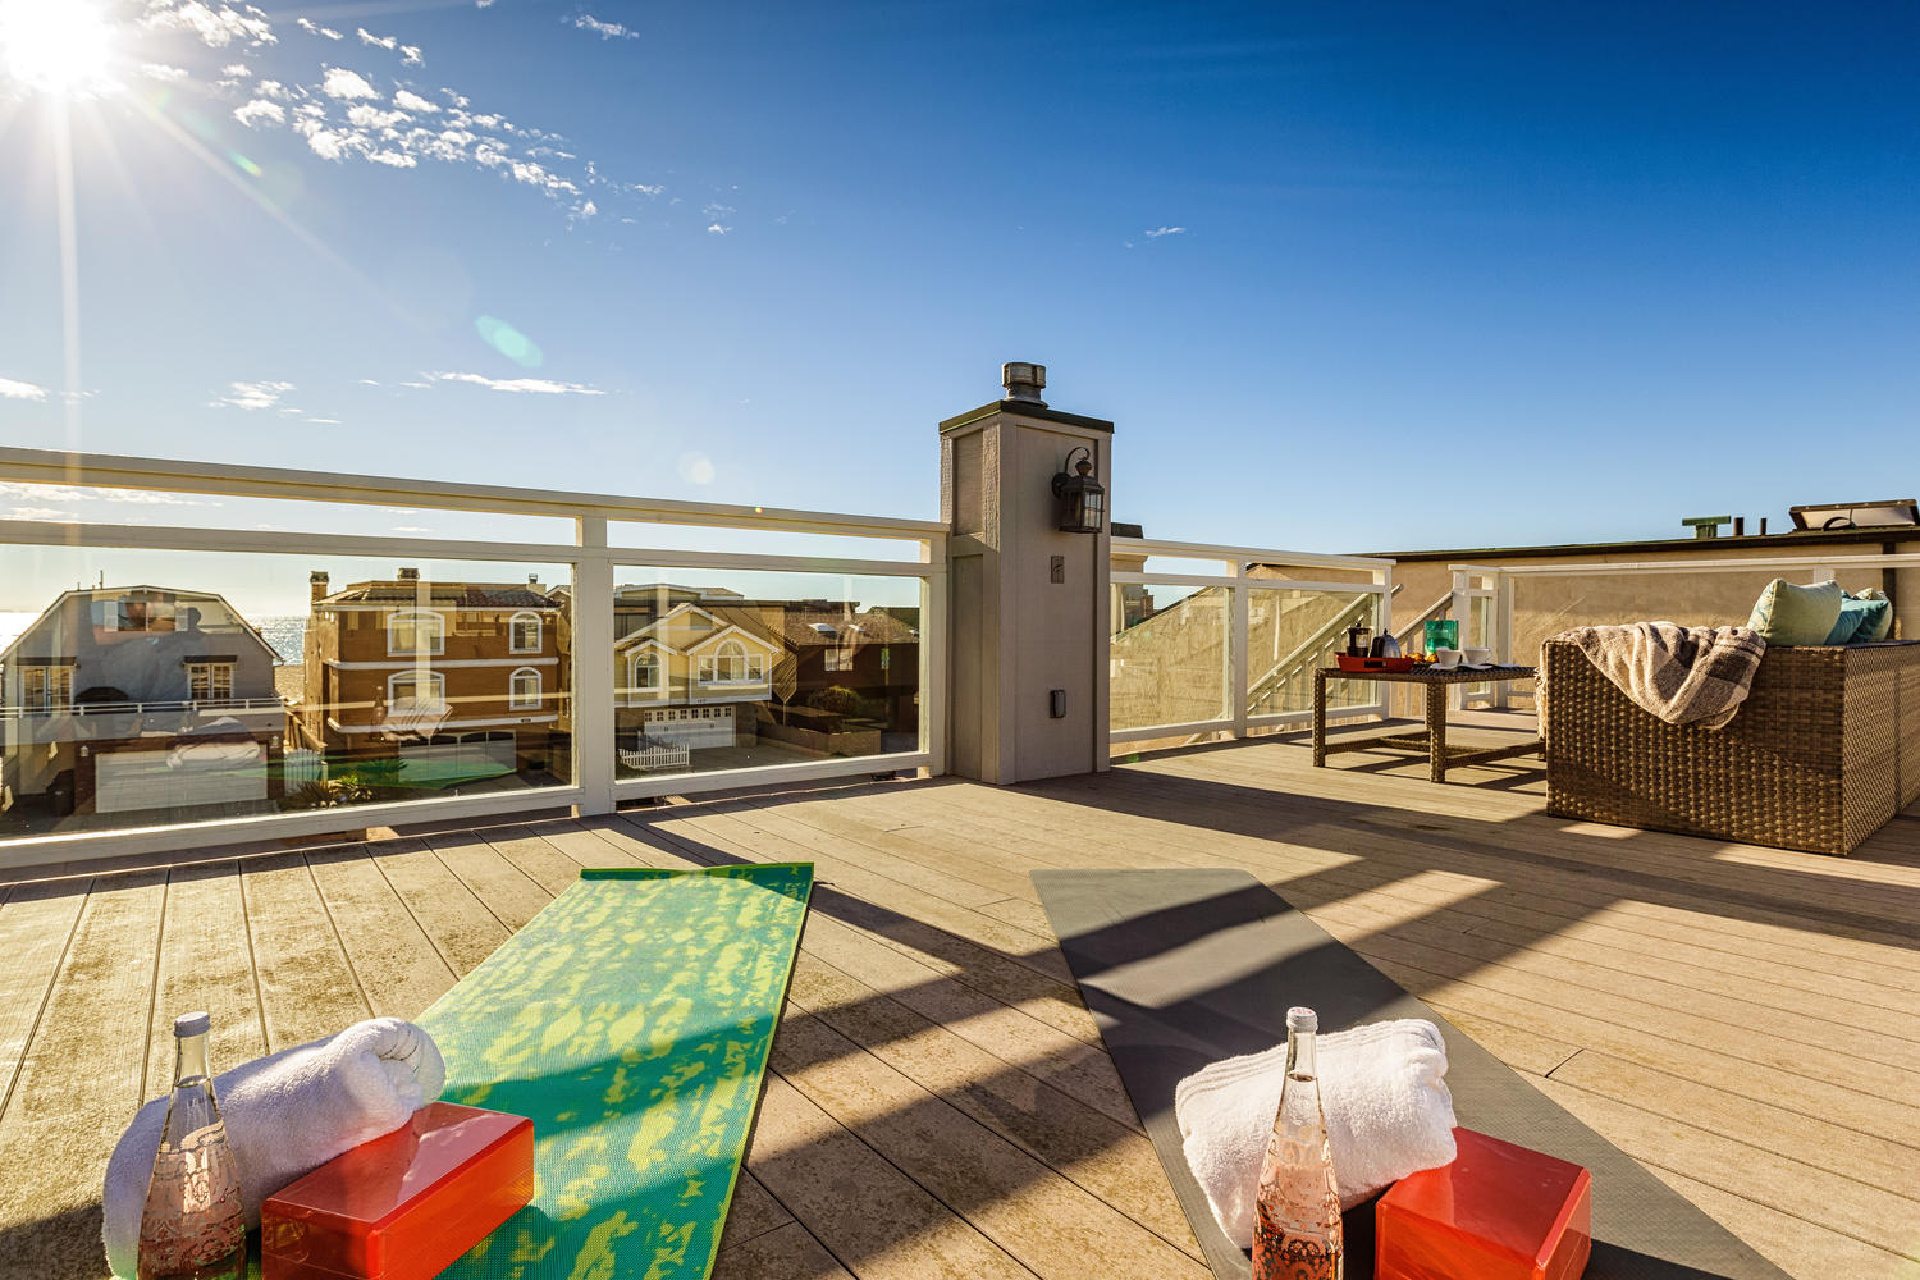 https://www.addressrealestate.com/media/images/blogs/38/2/b_22-1408-ocean-dr-oxnard-ca-93035-mls-size-022-16-rooftop-patio-1500x1000-72dpi.jpg